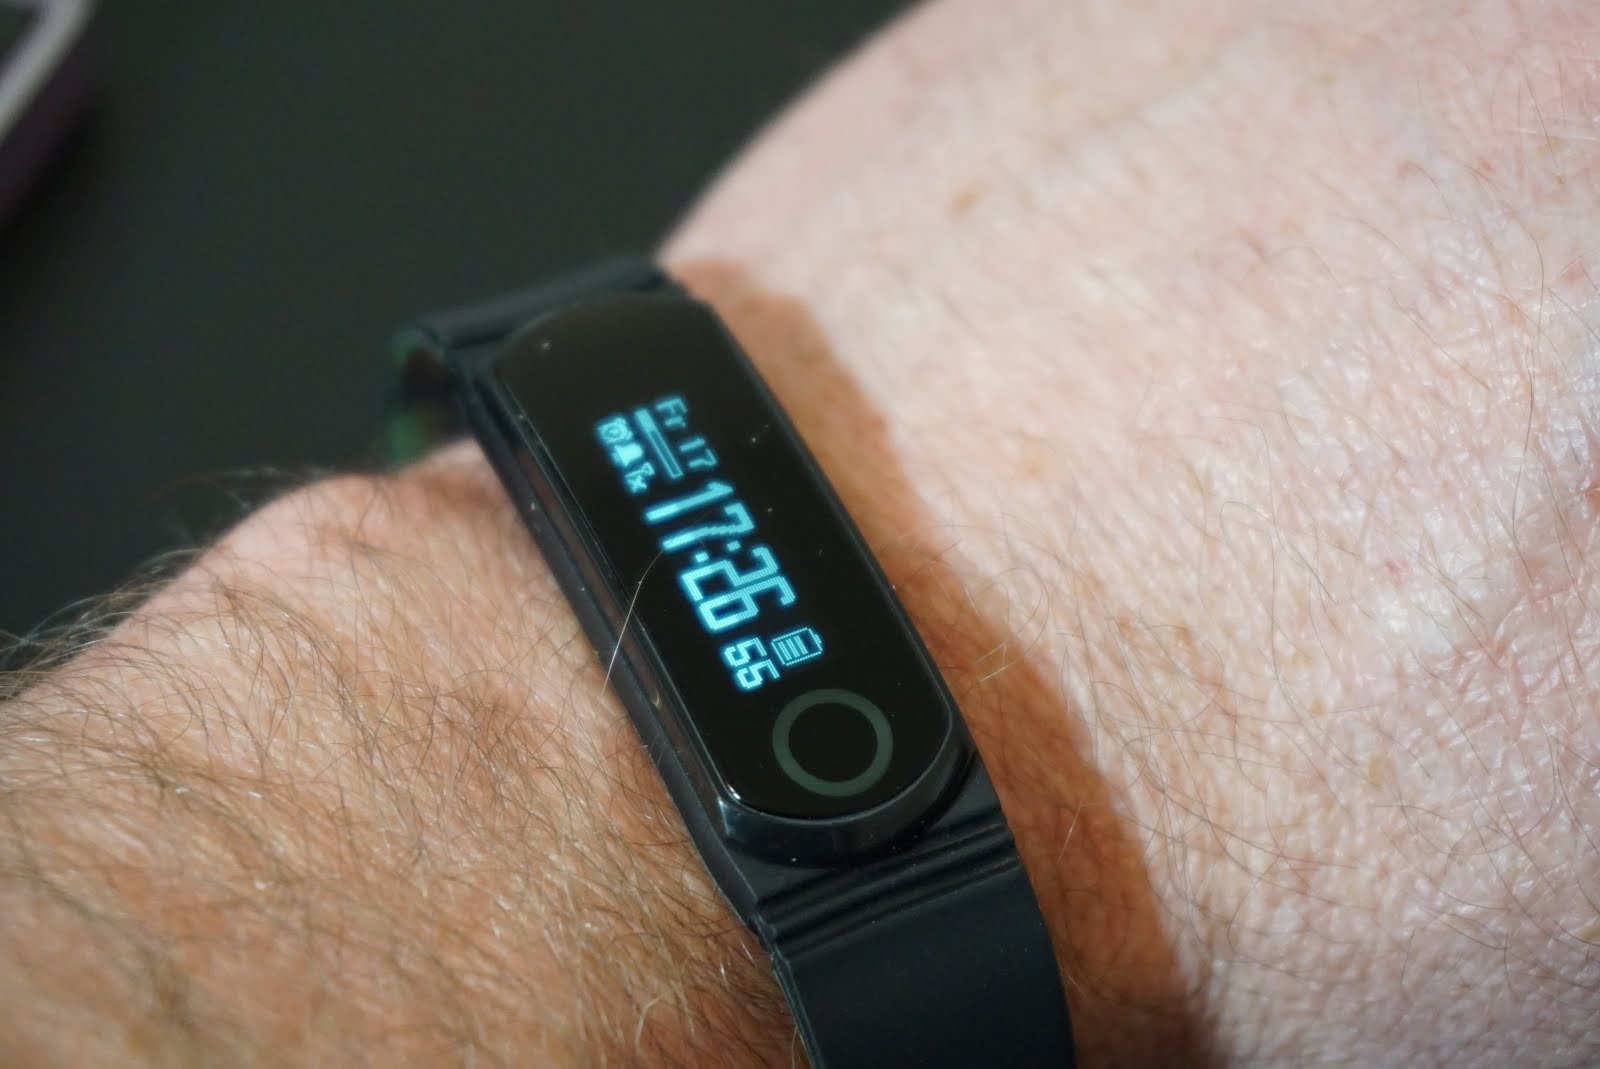 Q band fitness tracker review tutorial geek the q band ex fitness bandtracker is a cheaper alternative to devices such as the fitbit one fitbit flex or fitbit alta yet offers more features baditri Gallery